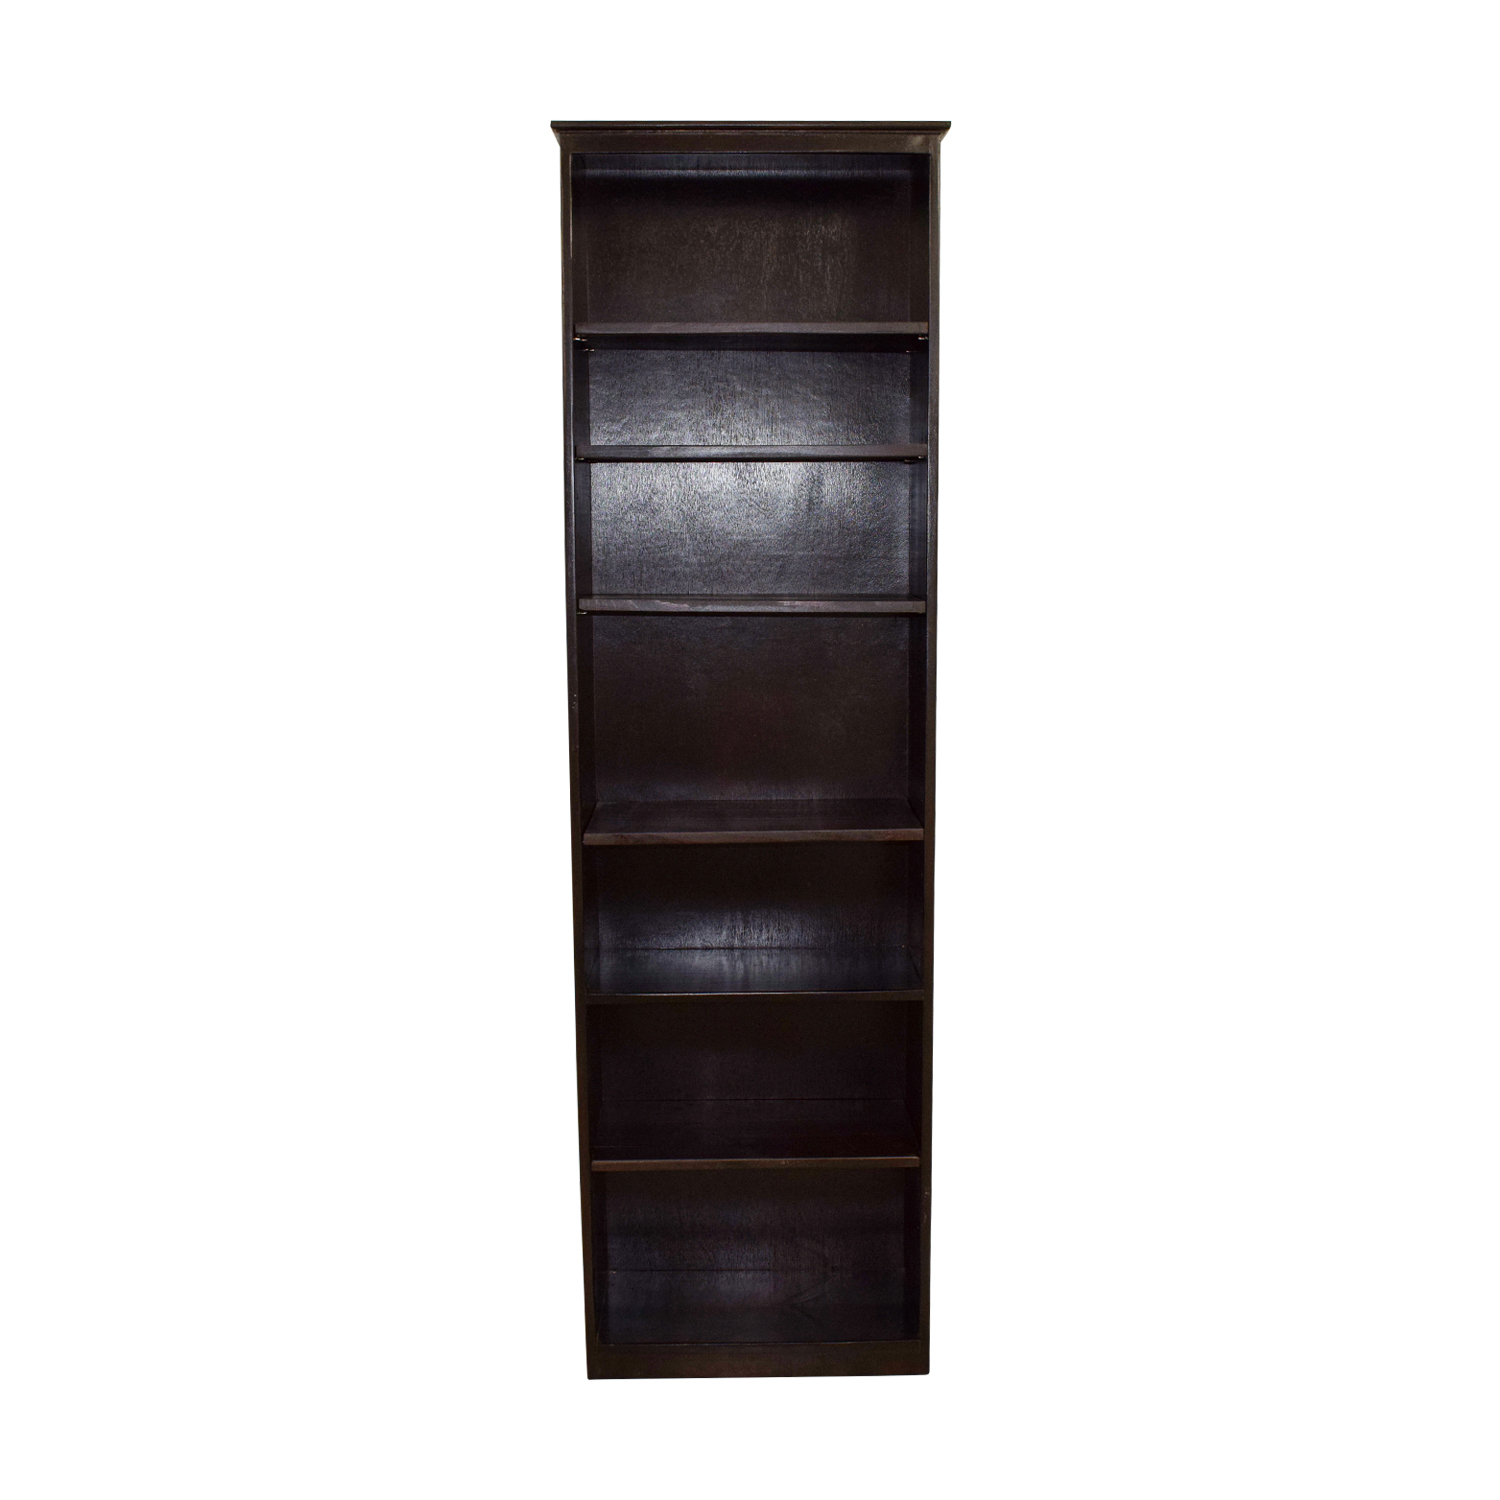 Gothic Cabinet Craft Gothic Cabinet Craft Tall Bookshelf on sale